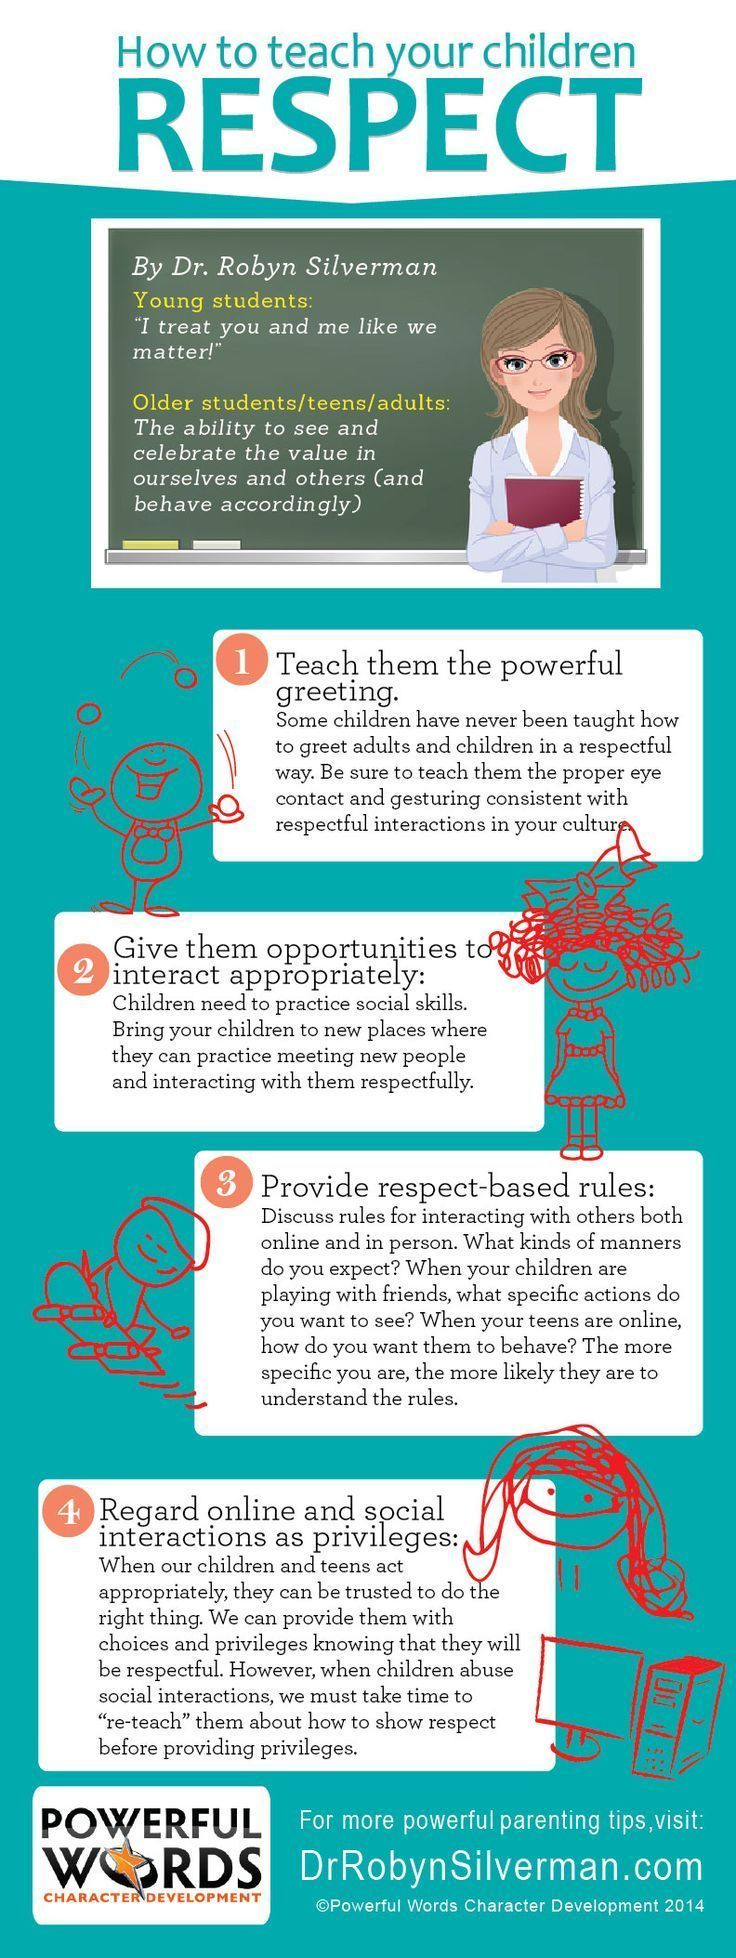 How To Teach Your Children Respect